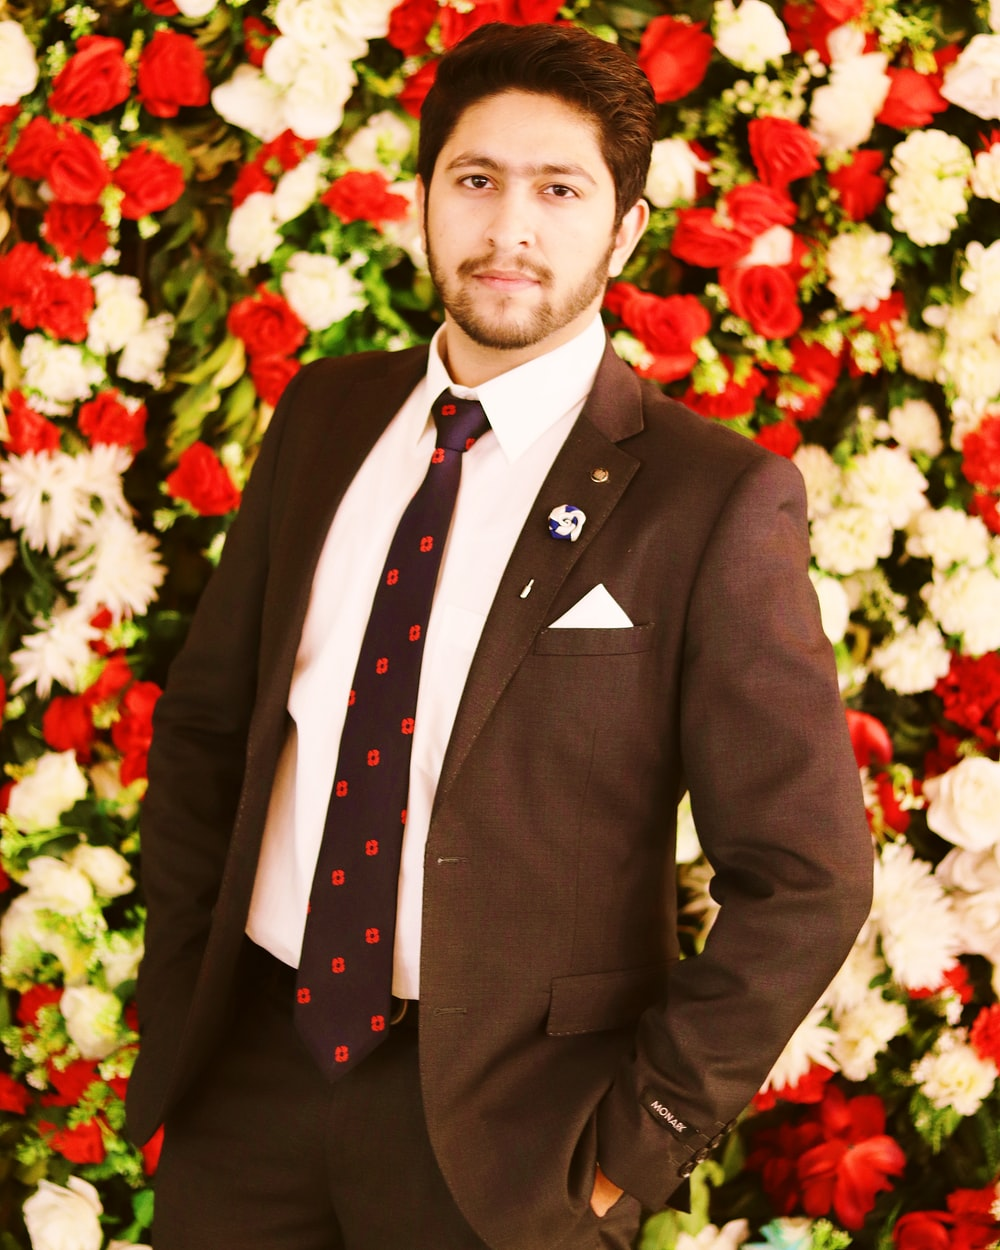 man in black suit standing in front of red and white flower bouquet